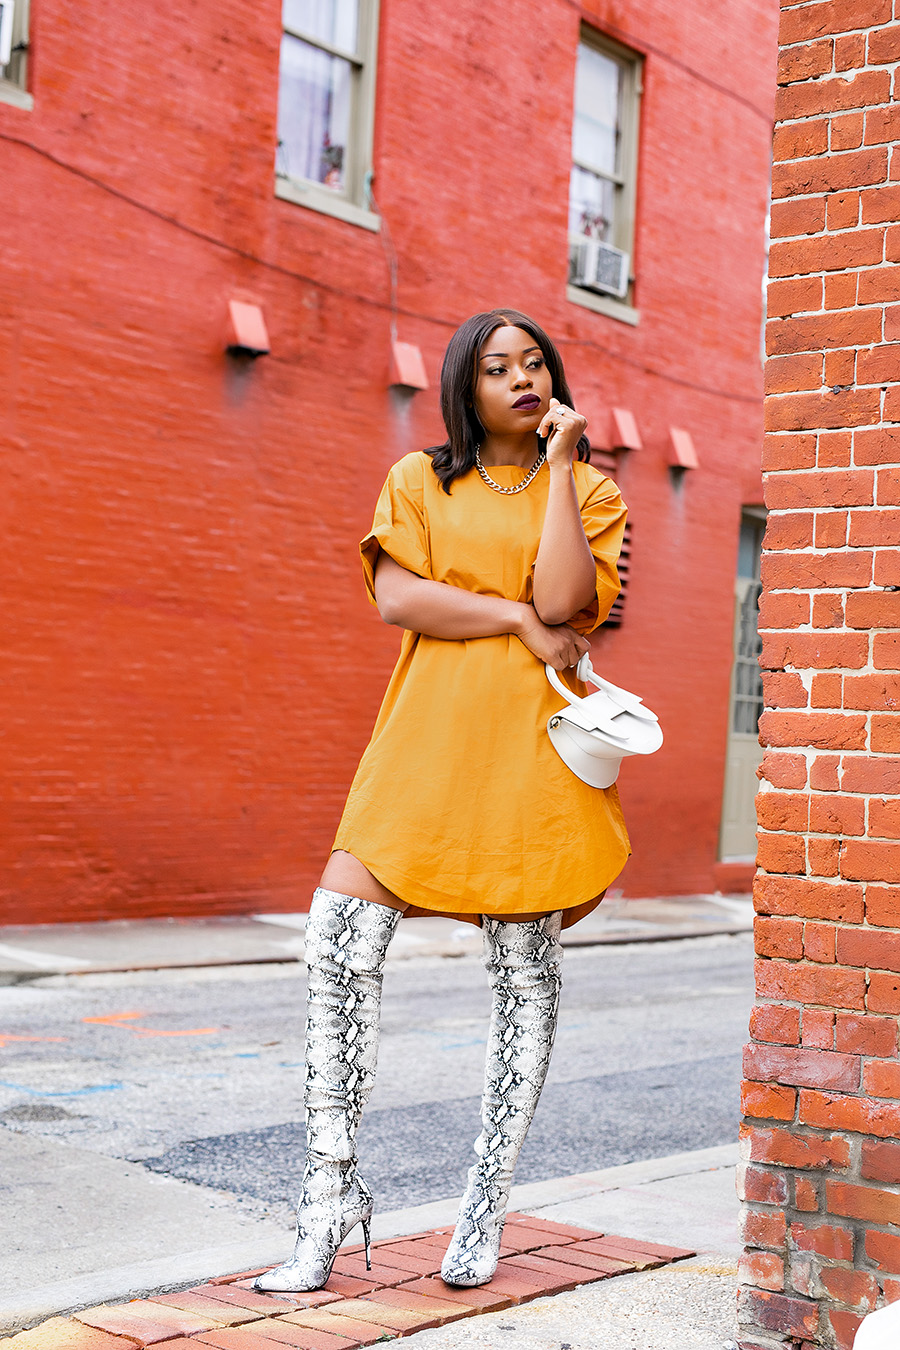 wear snake print boots and dress for fall